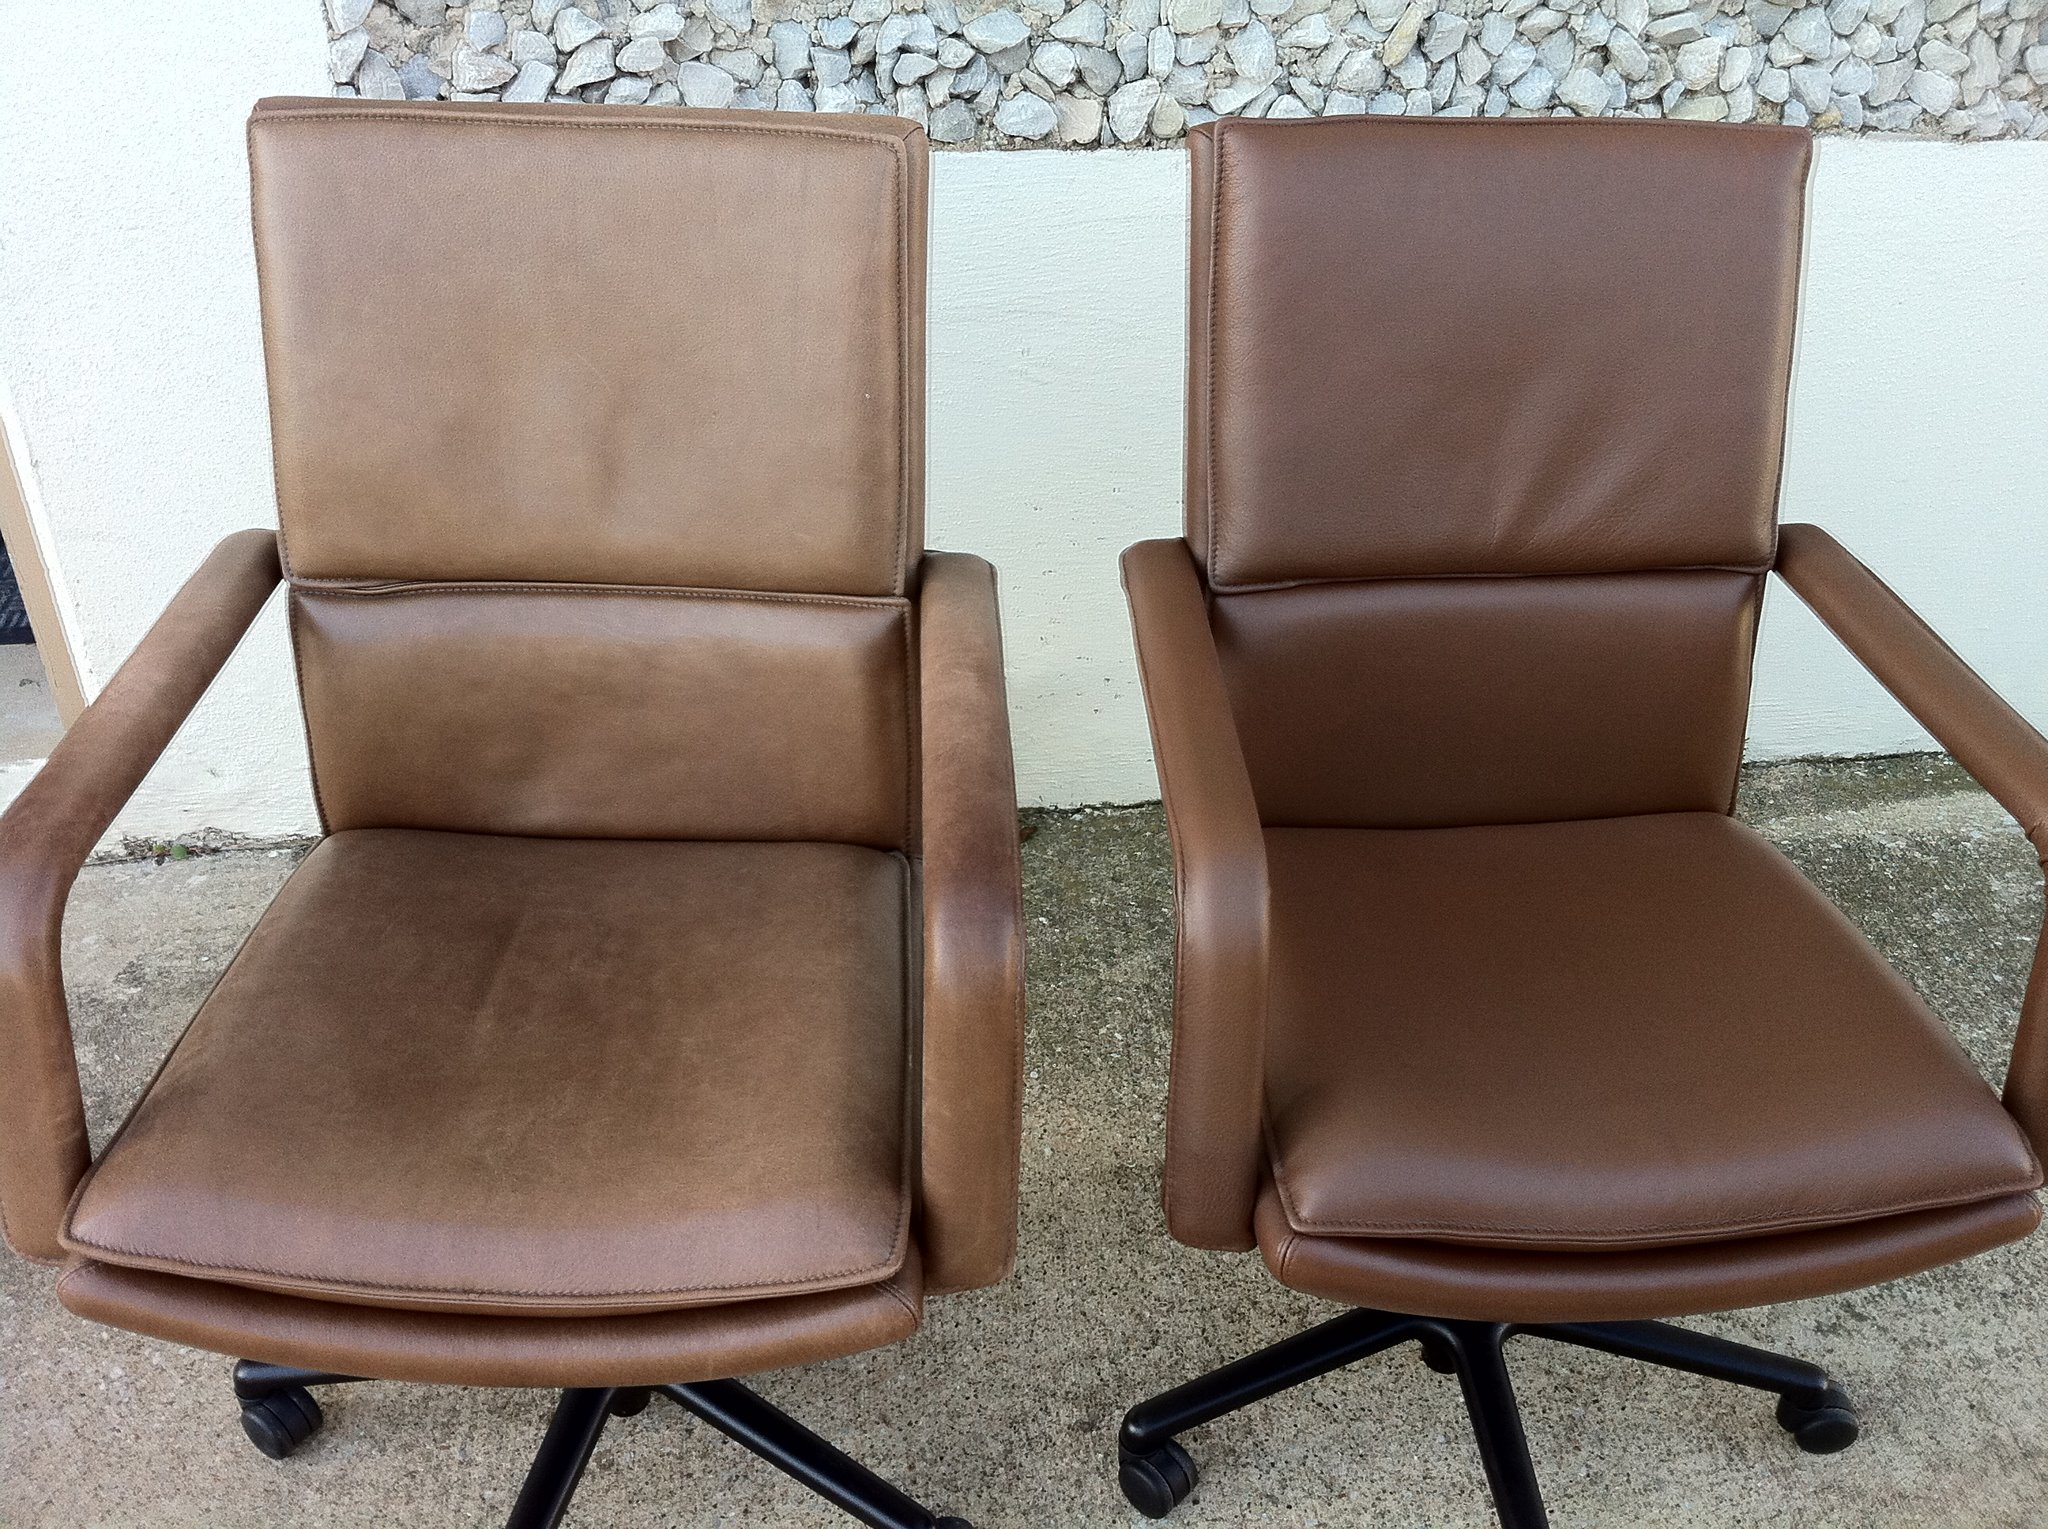 Before & After: Office Chairs Refinished by New Life Service Company of Dallas at www.newlifeservice.net